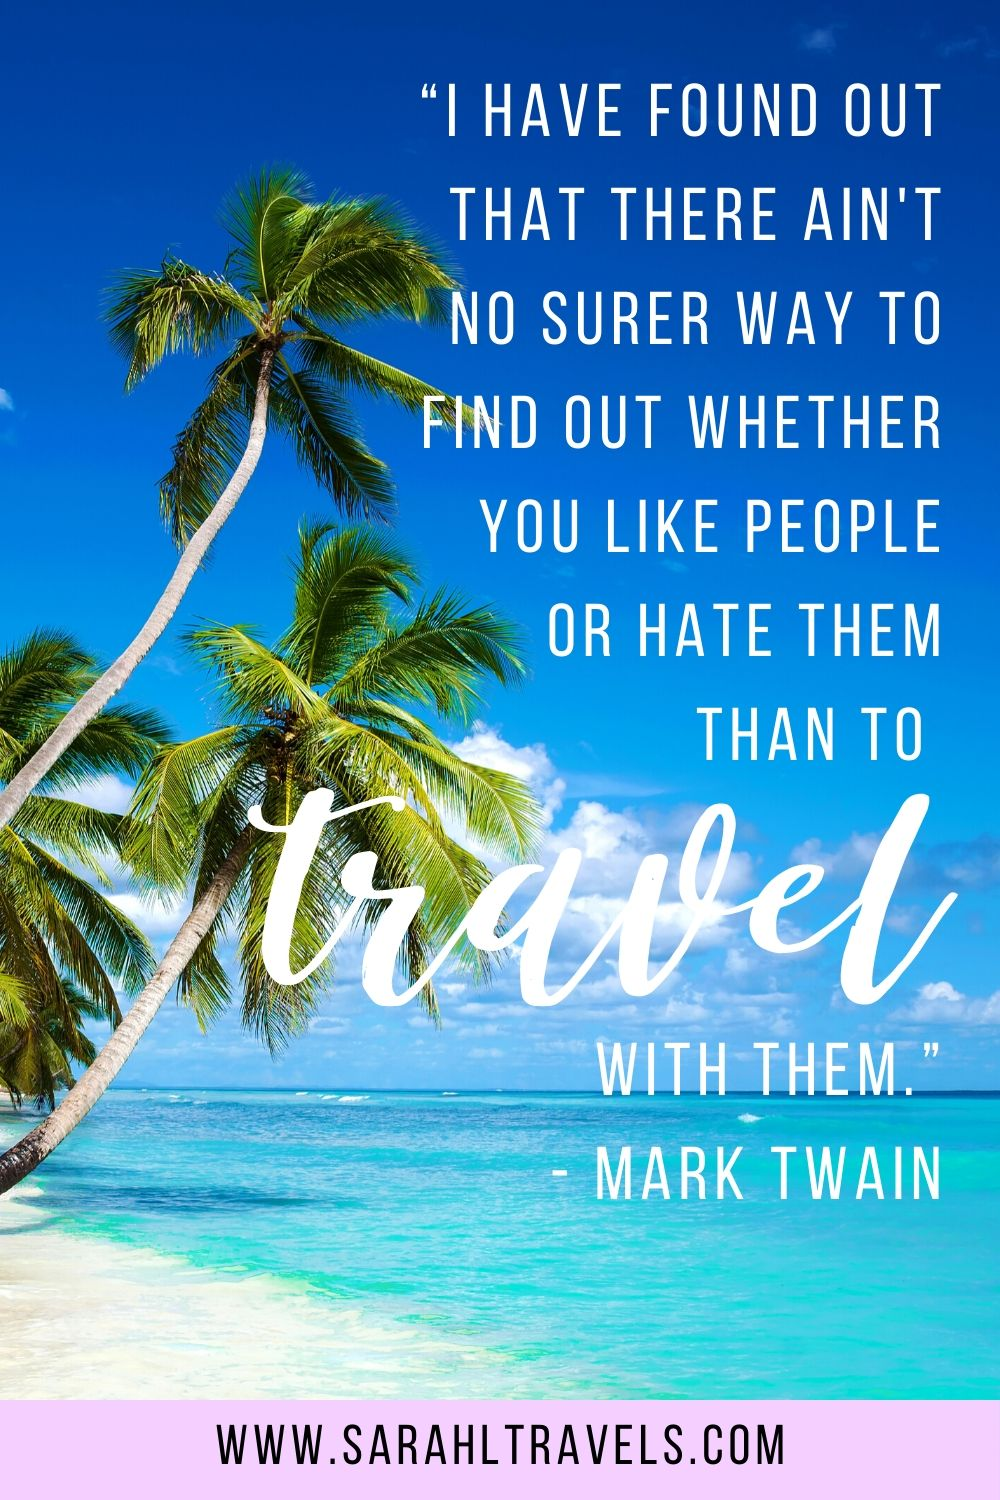 """Beach and palm trees in the Dominican Republic with quote """"I have found out that there ain't no surer way to find out whether you like people or hate them than to travel with them."""""""